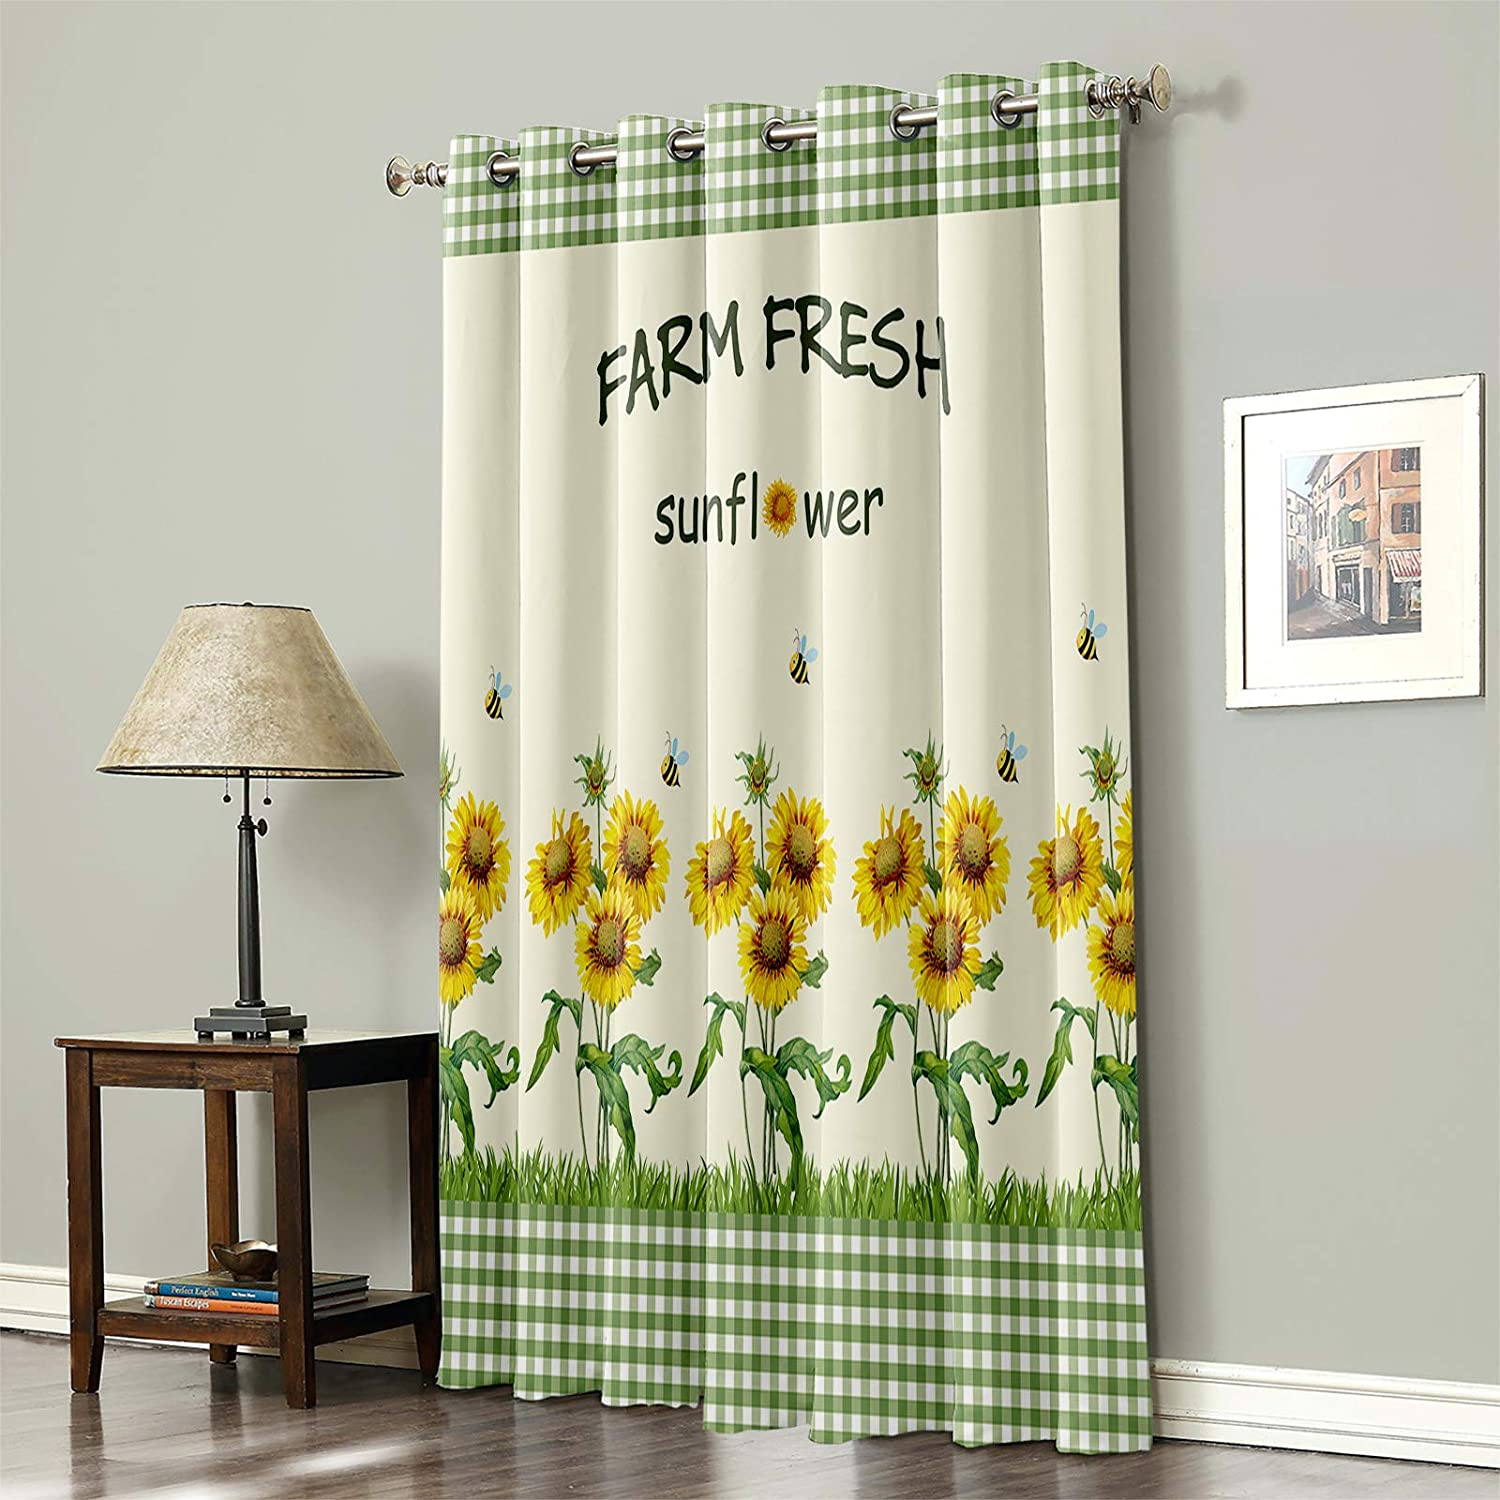 Blackout Curtain for Bedroom Farm Sunflower Fresh Outstanding on Green Outlet sale feature Plai